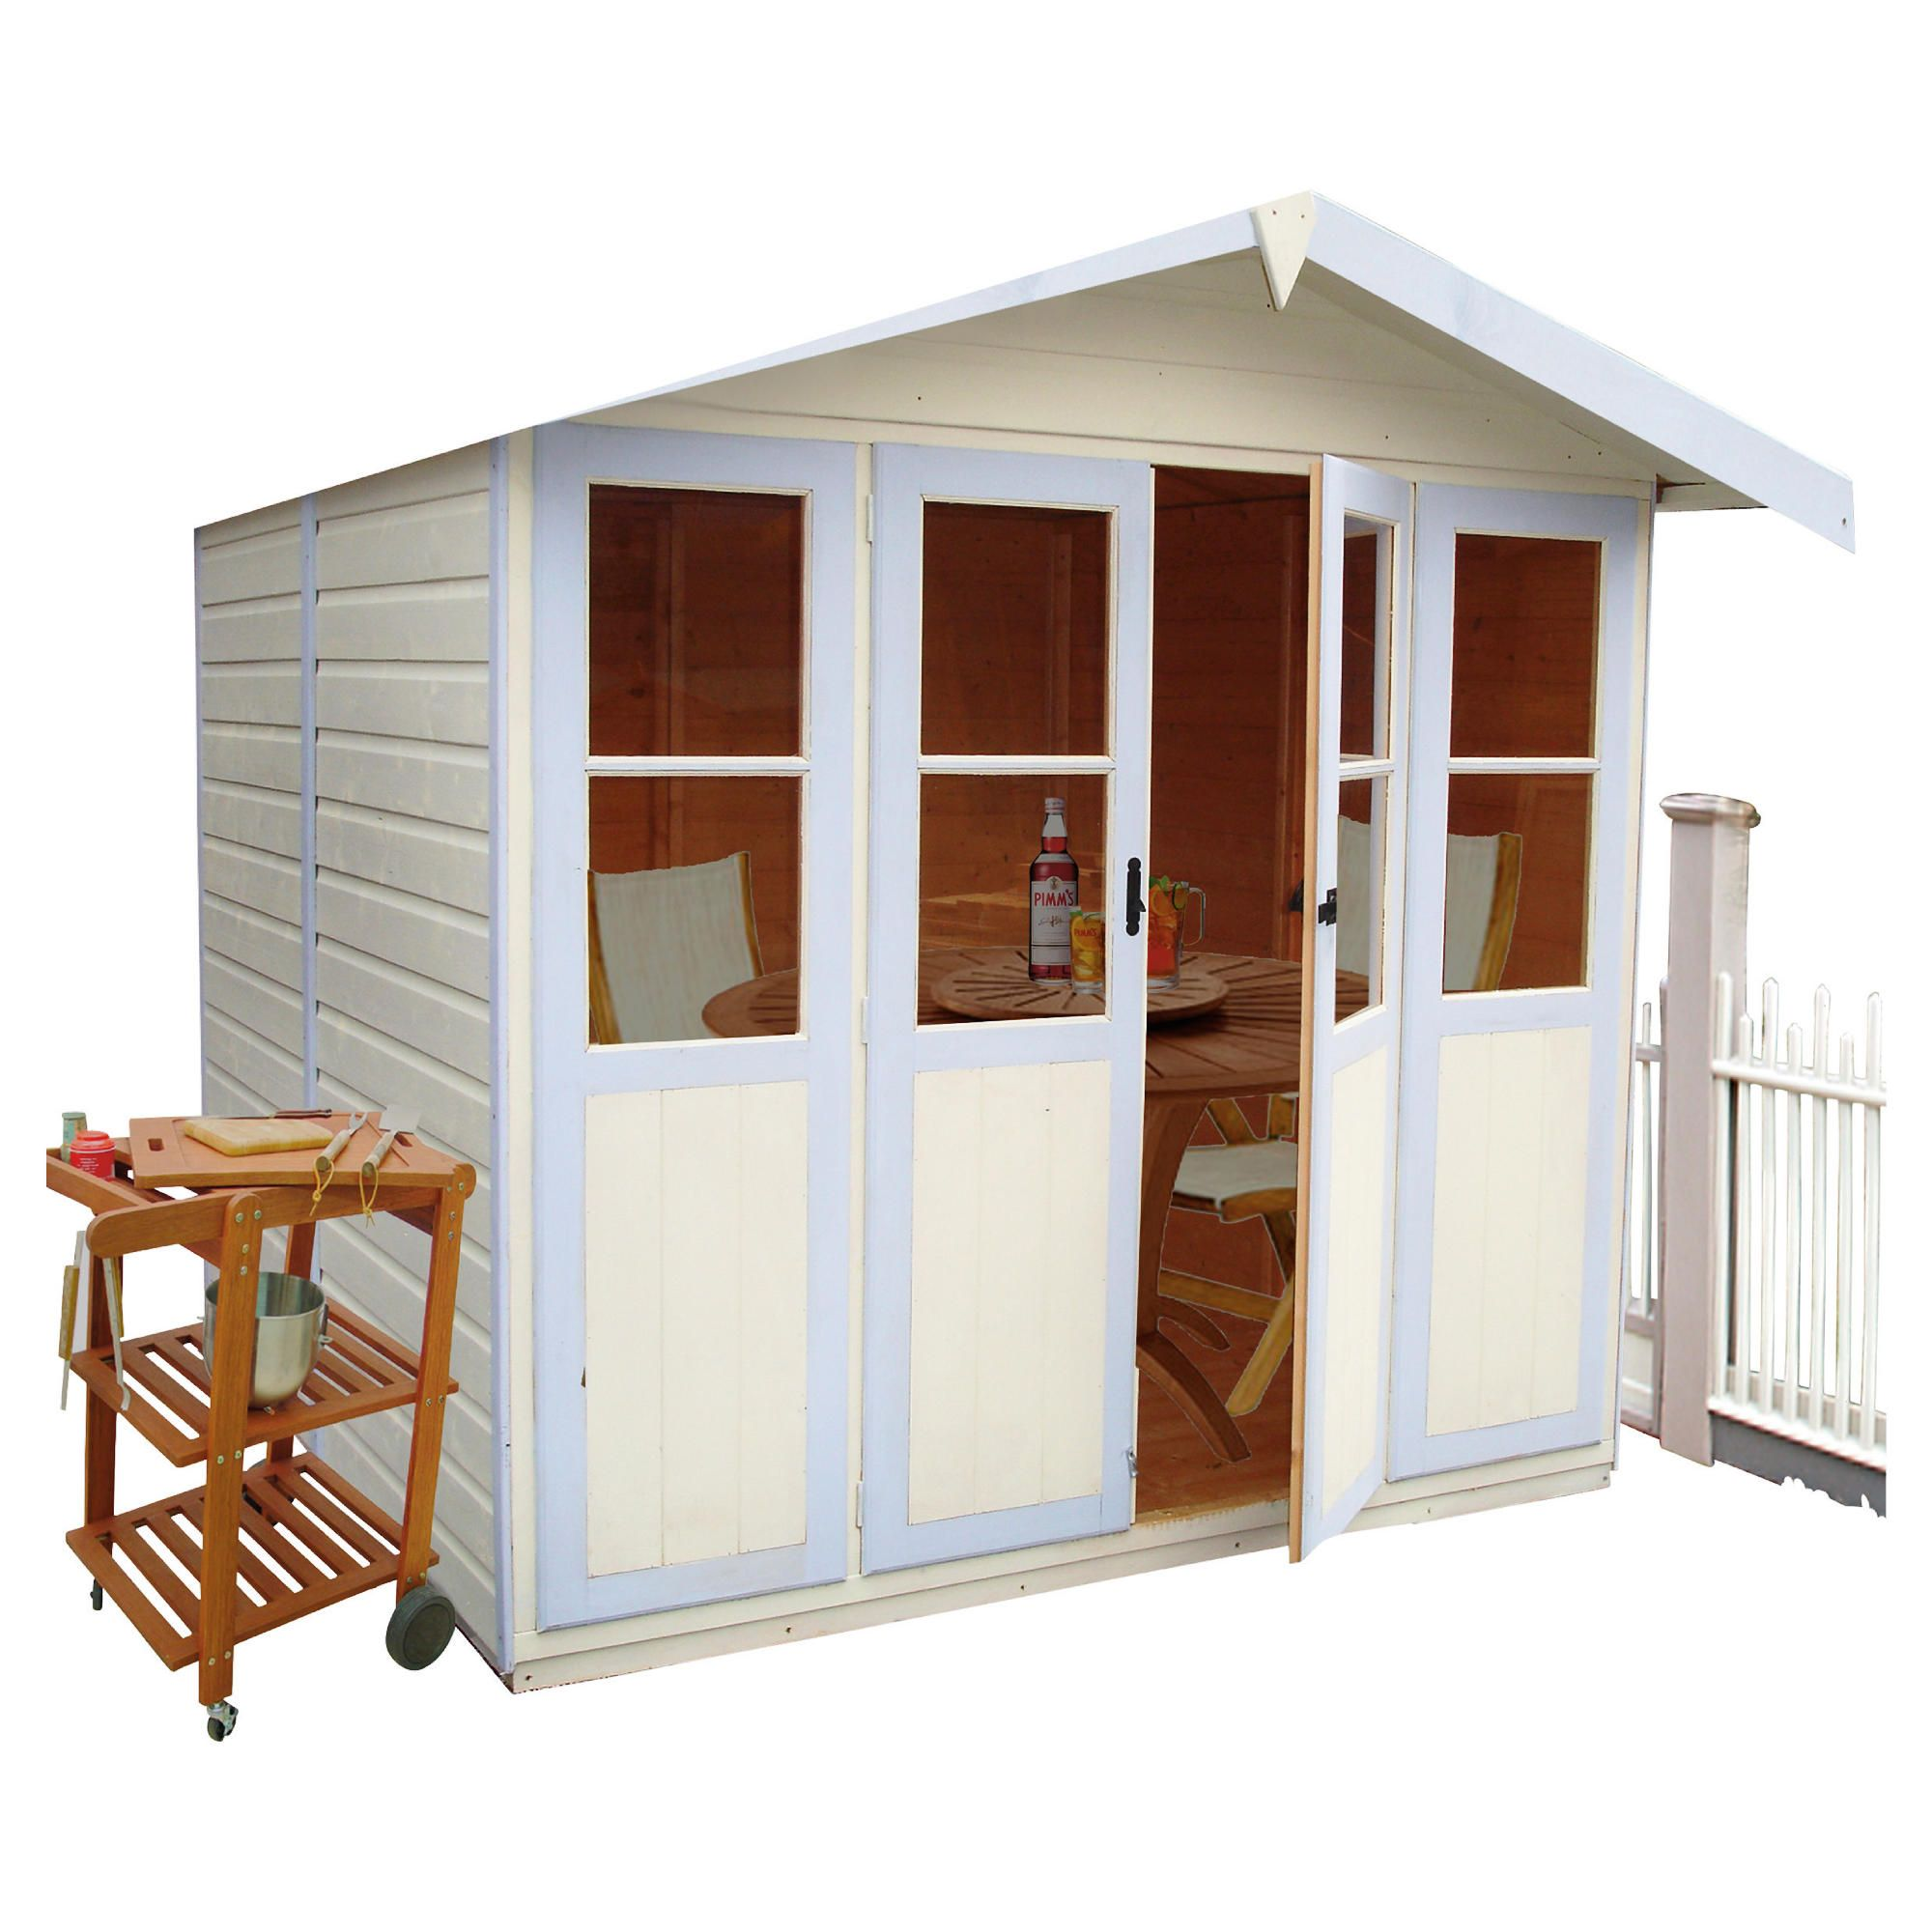 Finewood Haddon 7x5 Summerhouse at Tesco Direct